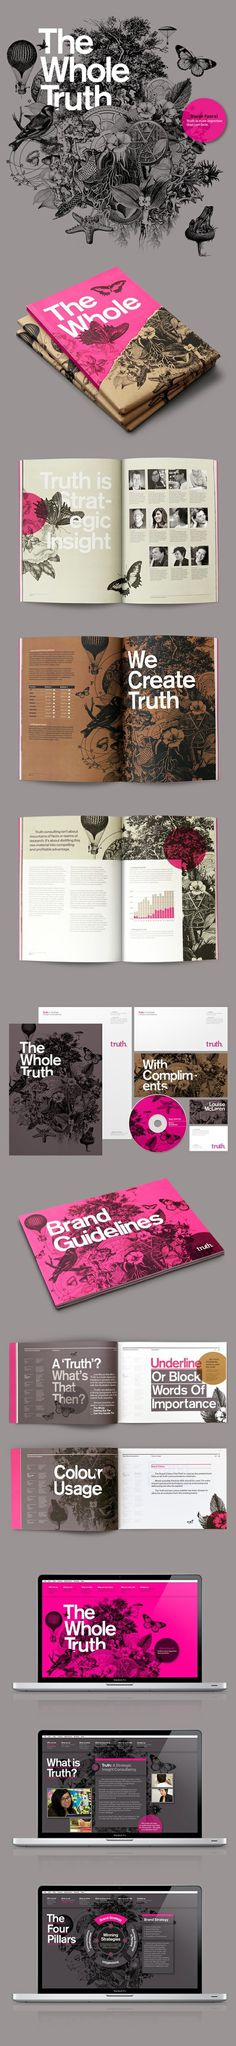 Truth Branding by Socio Design #layout #design #graphic #branding